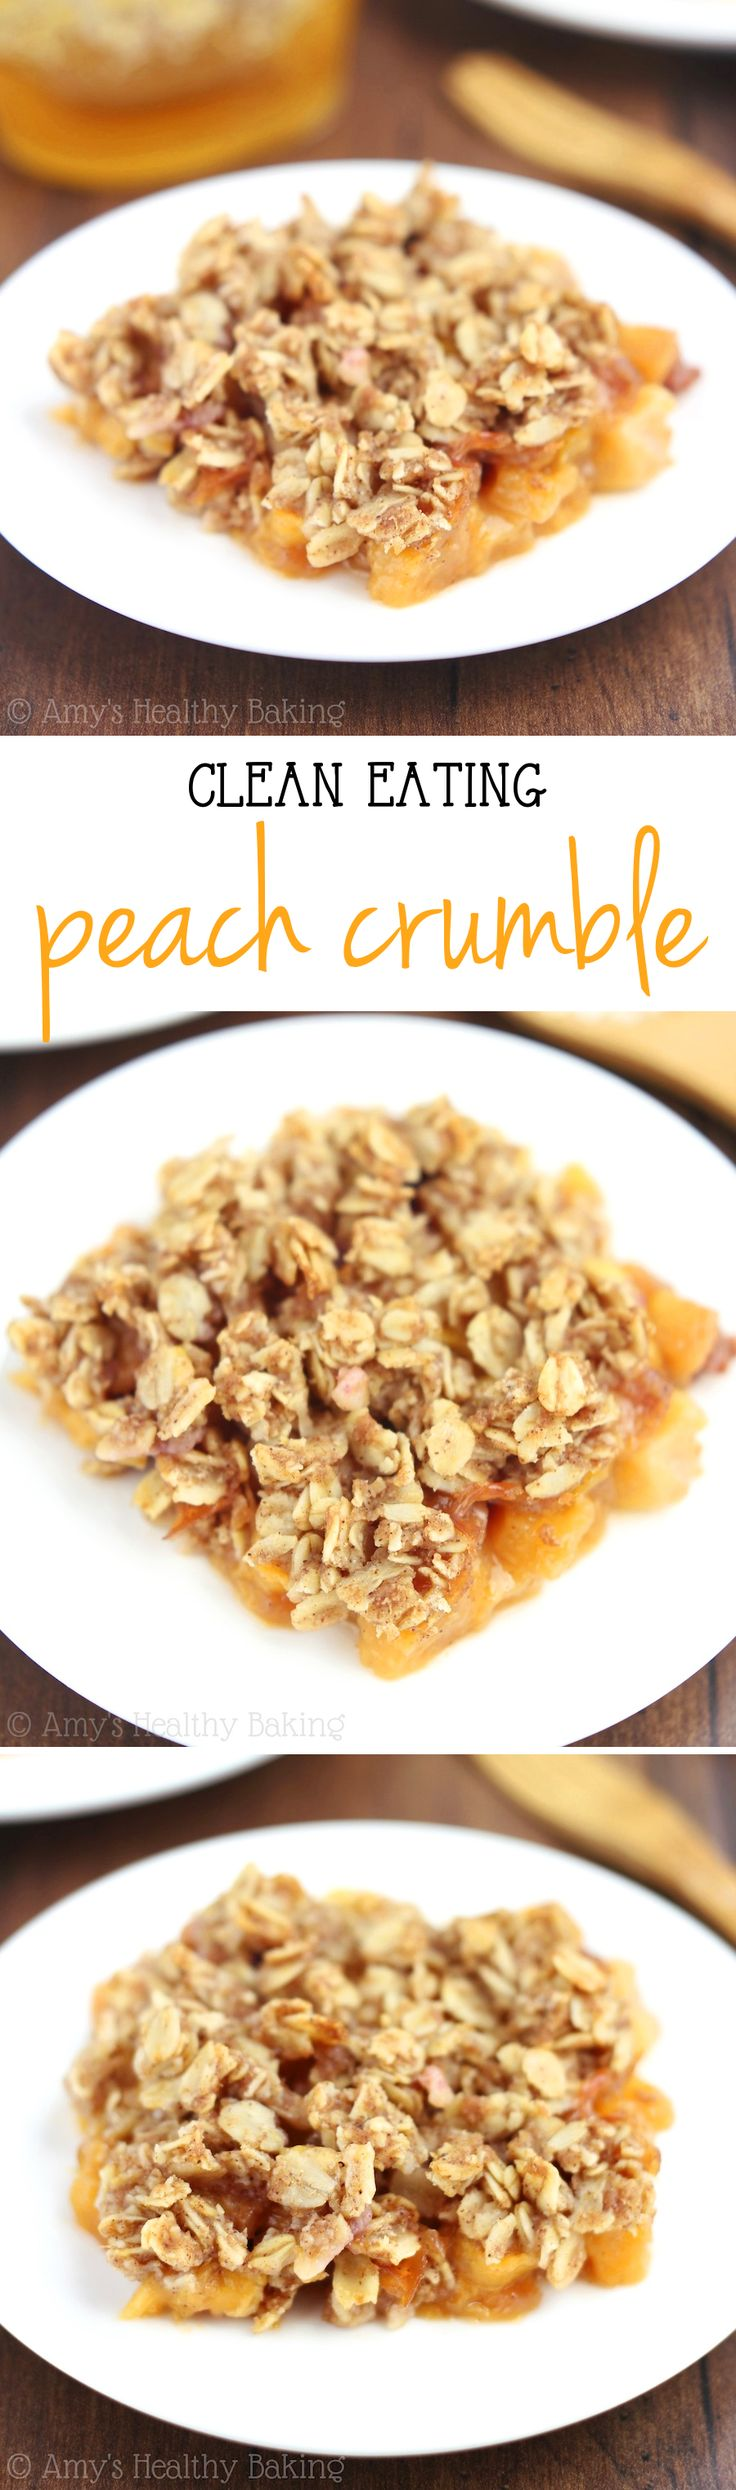 Clean-Eating Peach Crumble -- this easy dessert is healthy enough for breakfast! It has a full serving of fruit & barely 100 calories!